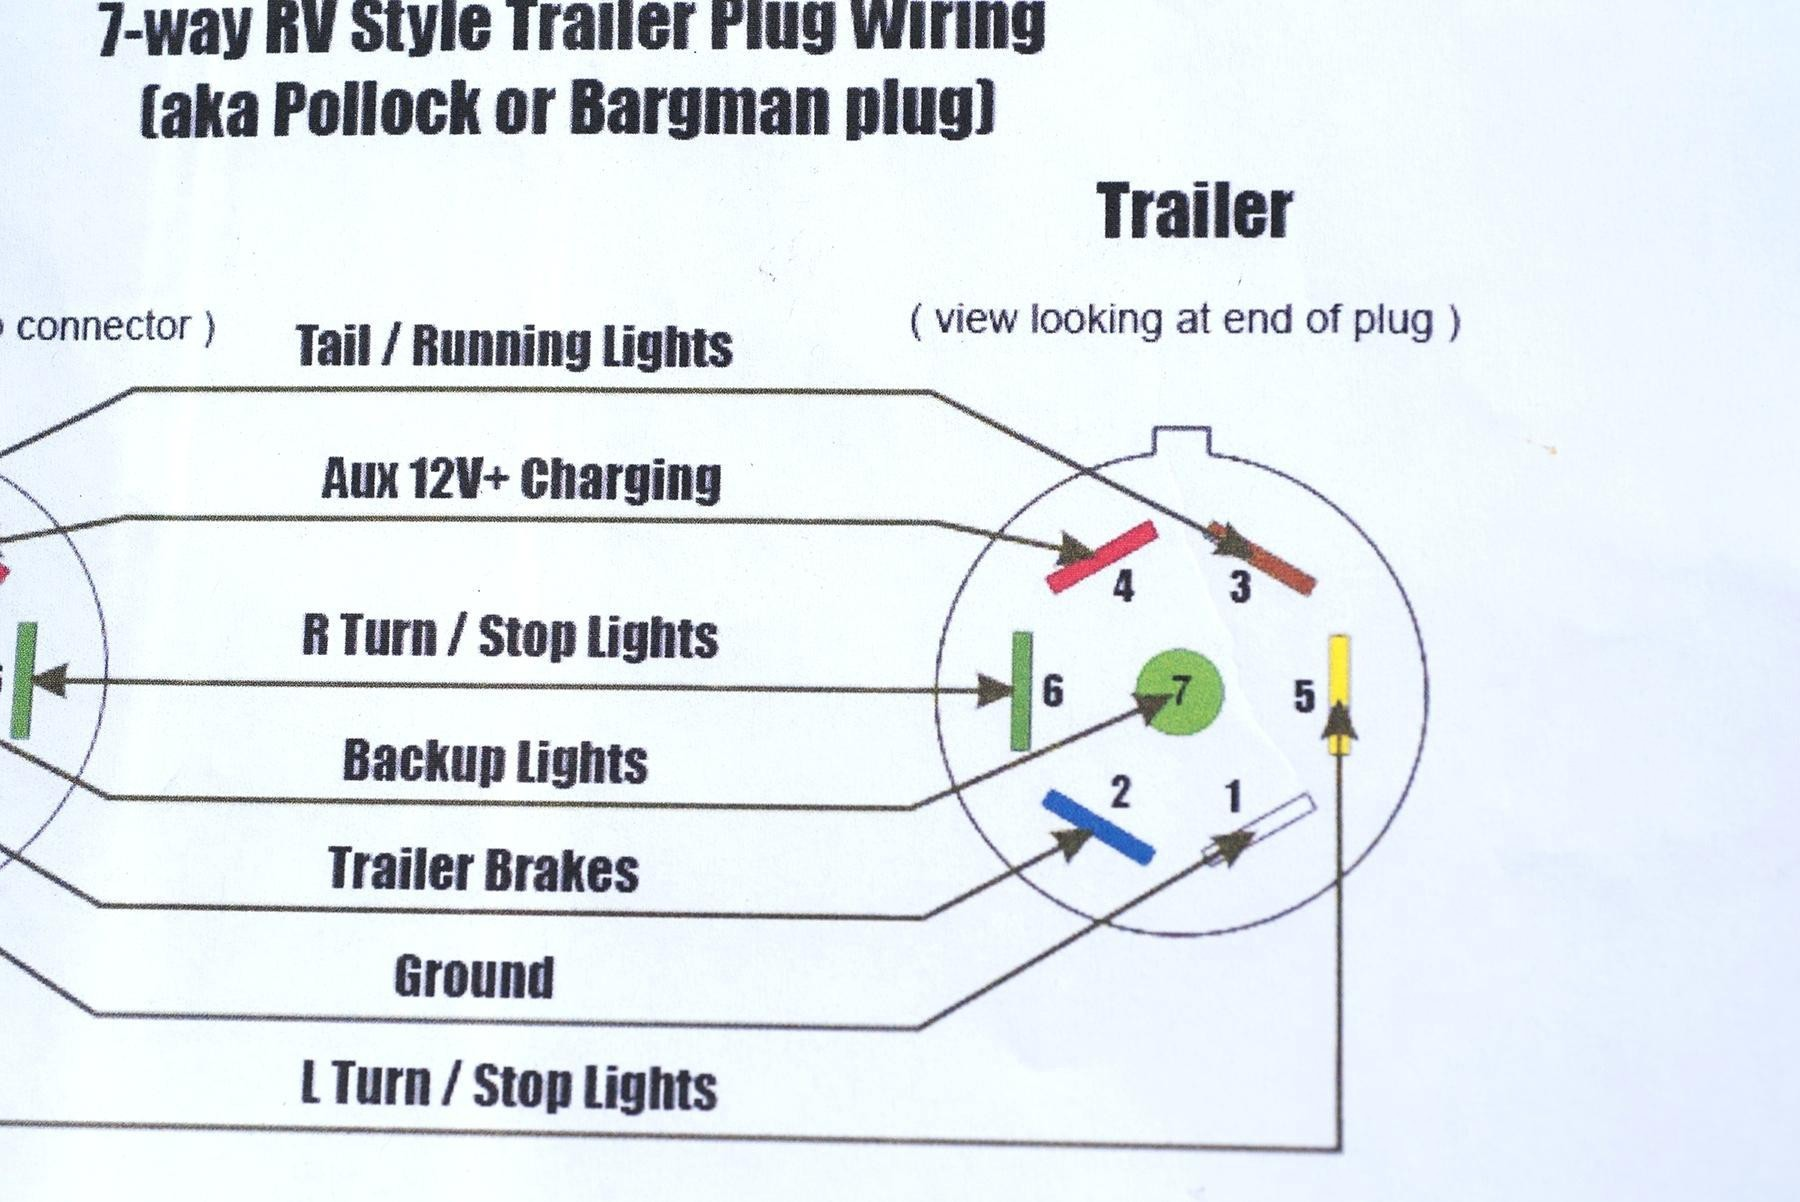 gm trailer wiring - wiring diagram system dark-norm -  dark-norm.ediliadesign.it  edilia design